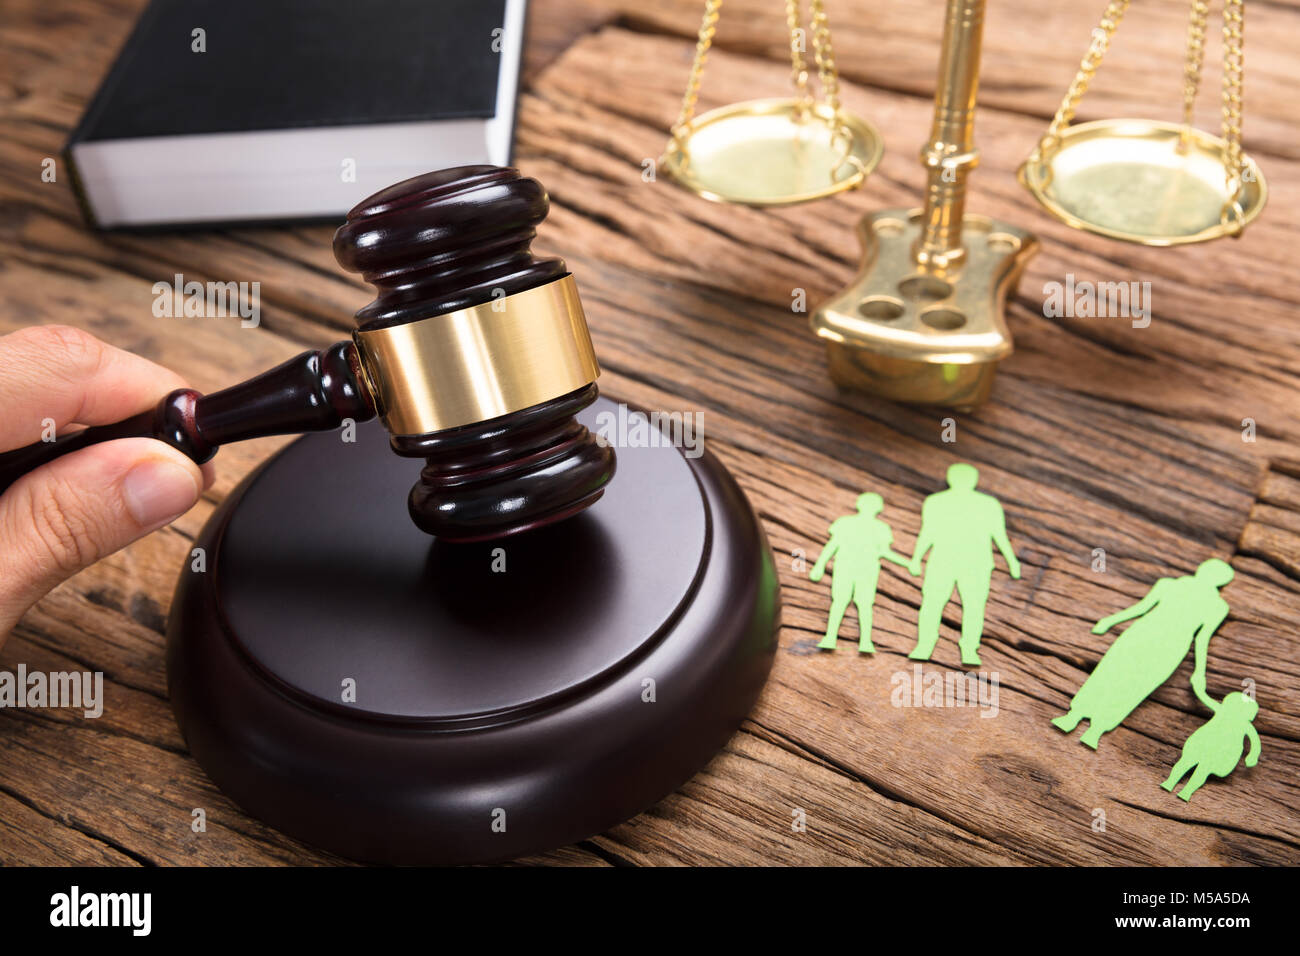 Judge hitting mallet by separated paper family and justice scale on wooden table - Stock Image